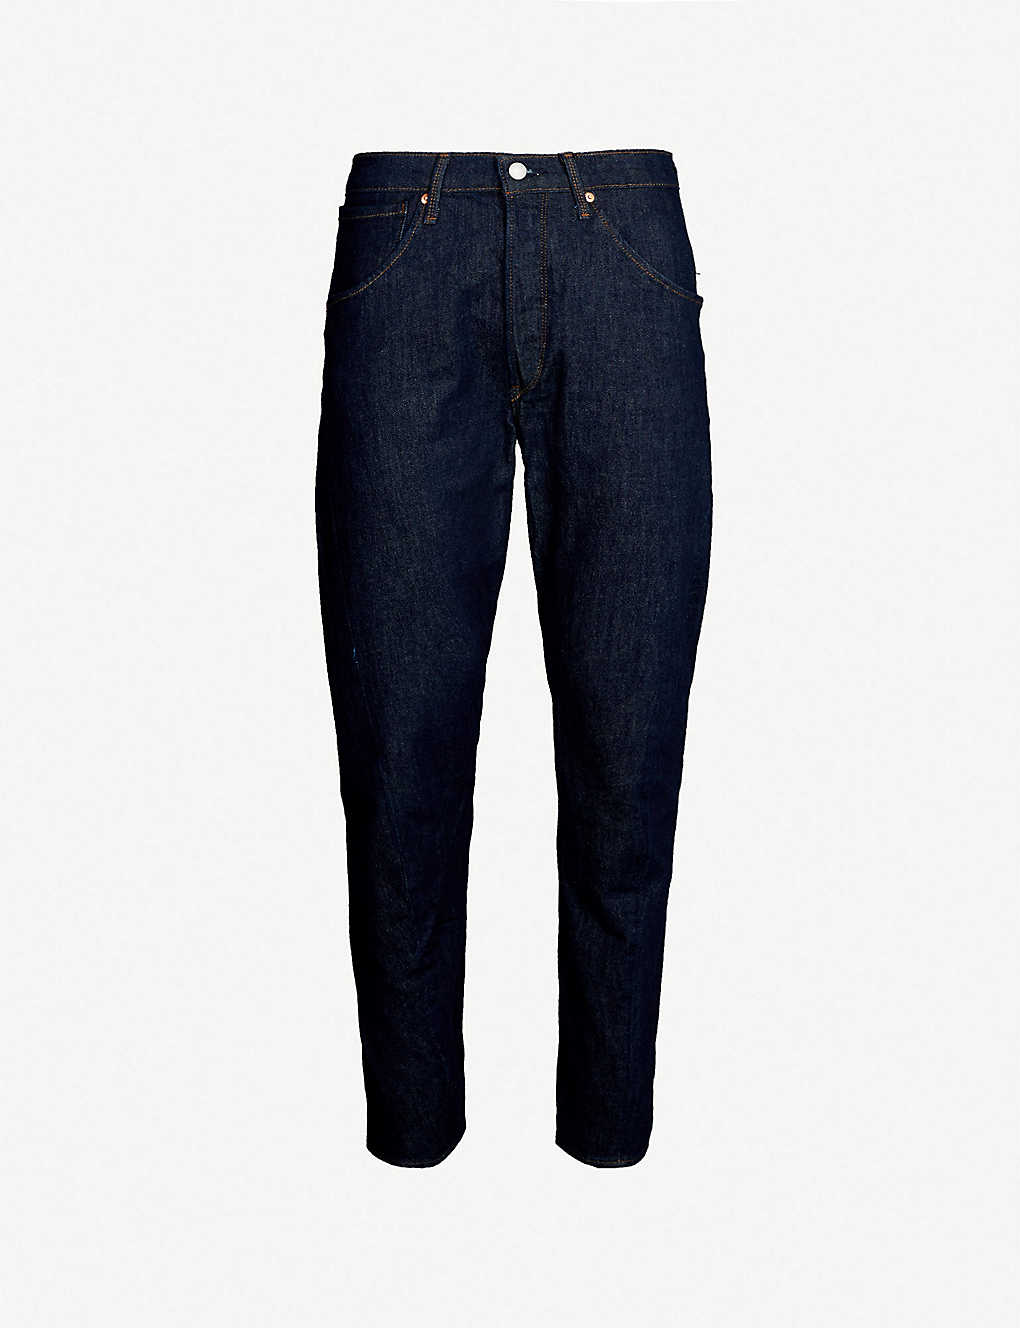 aeaeba95530 LEVIS - 541 athletic-fit mid-rise tapered jeans | Selfridges.com